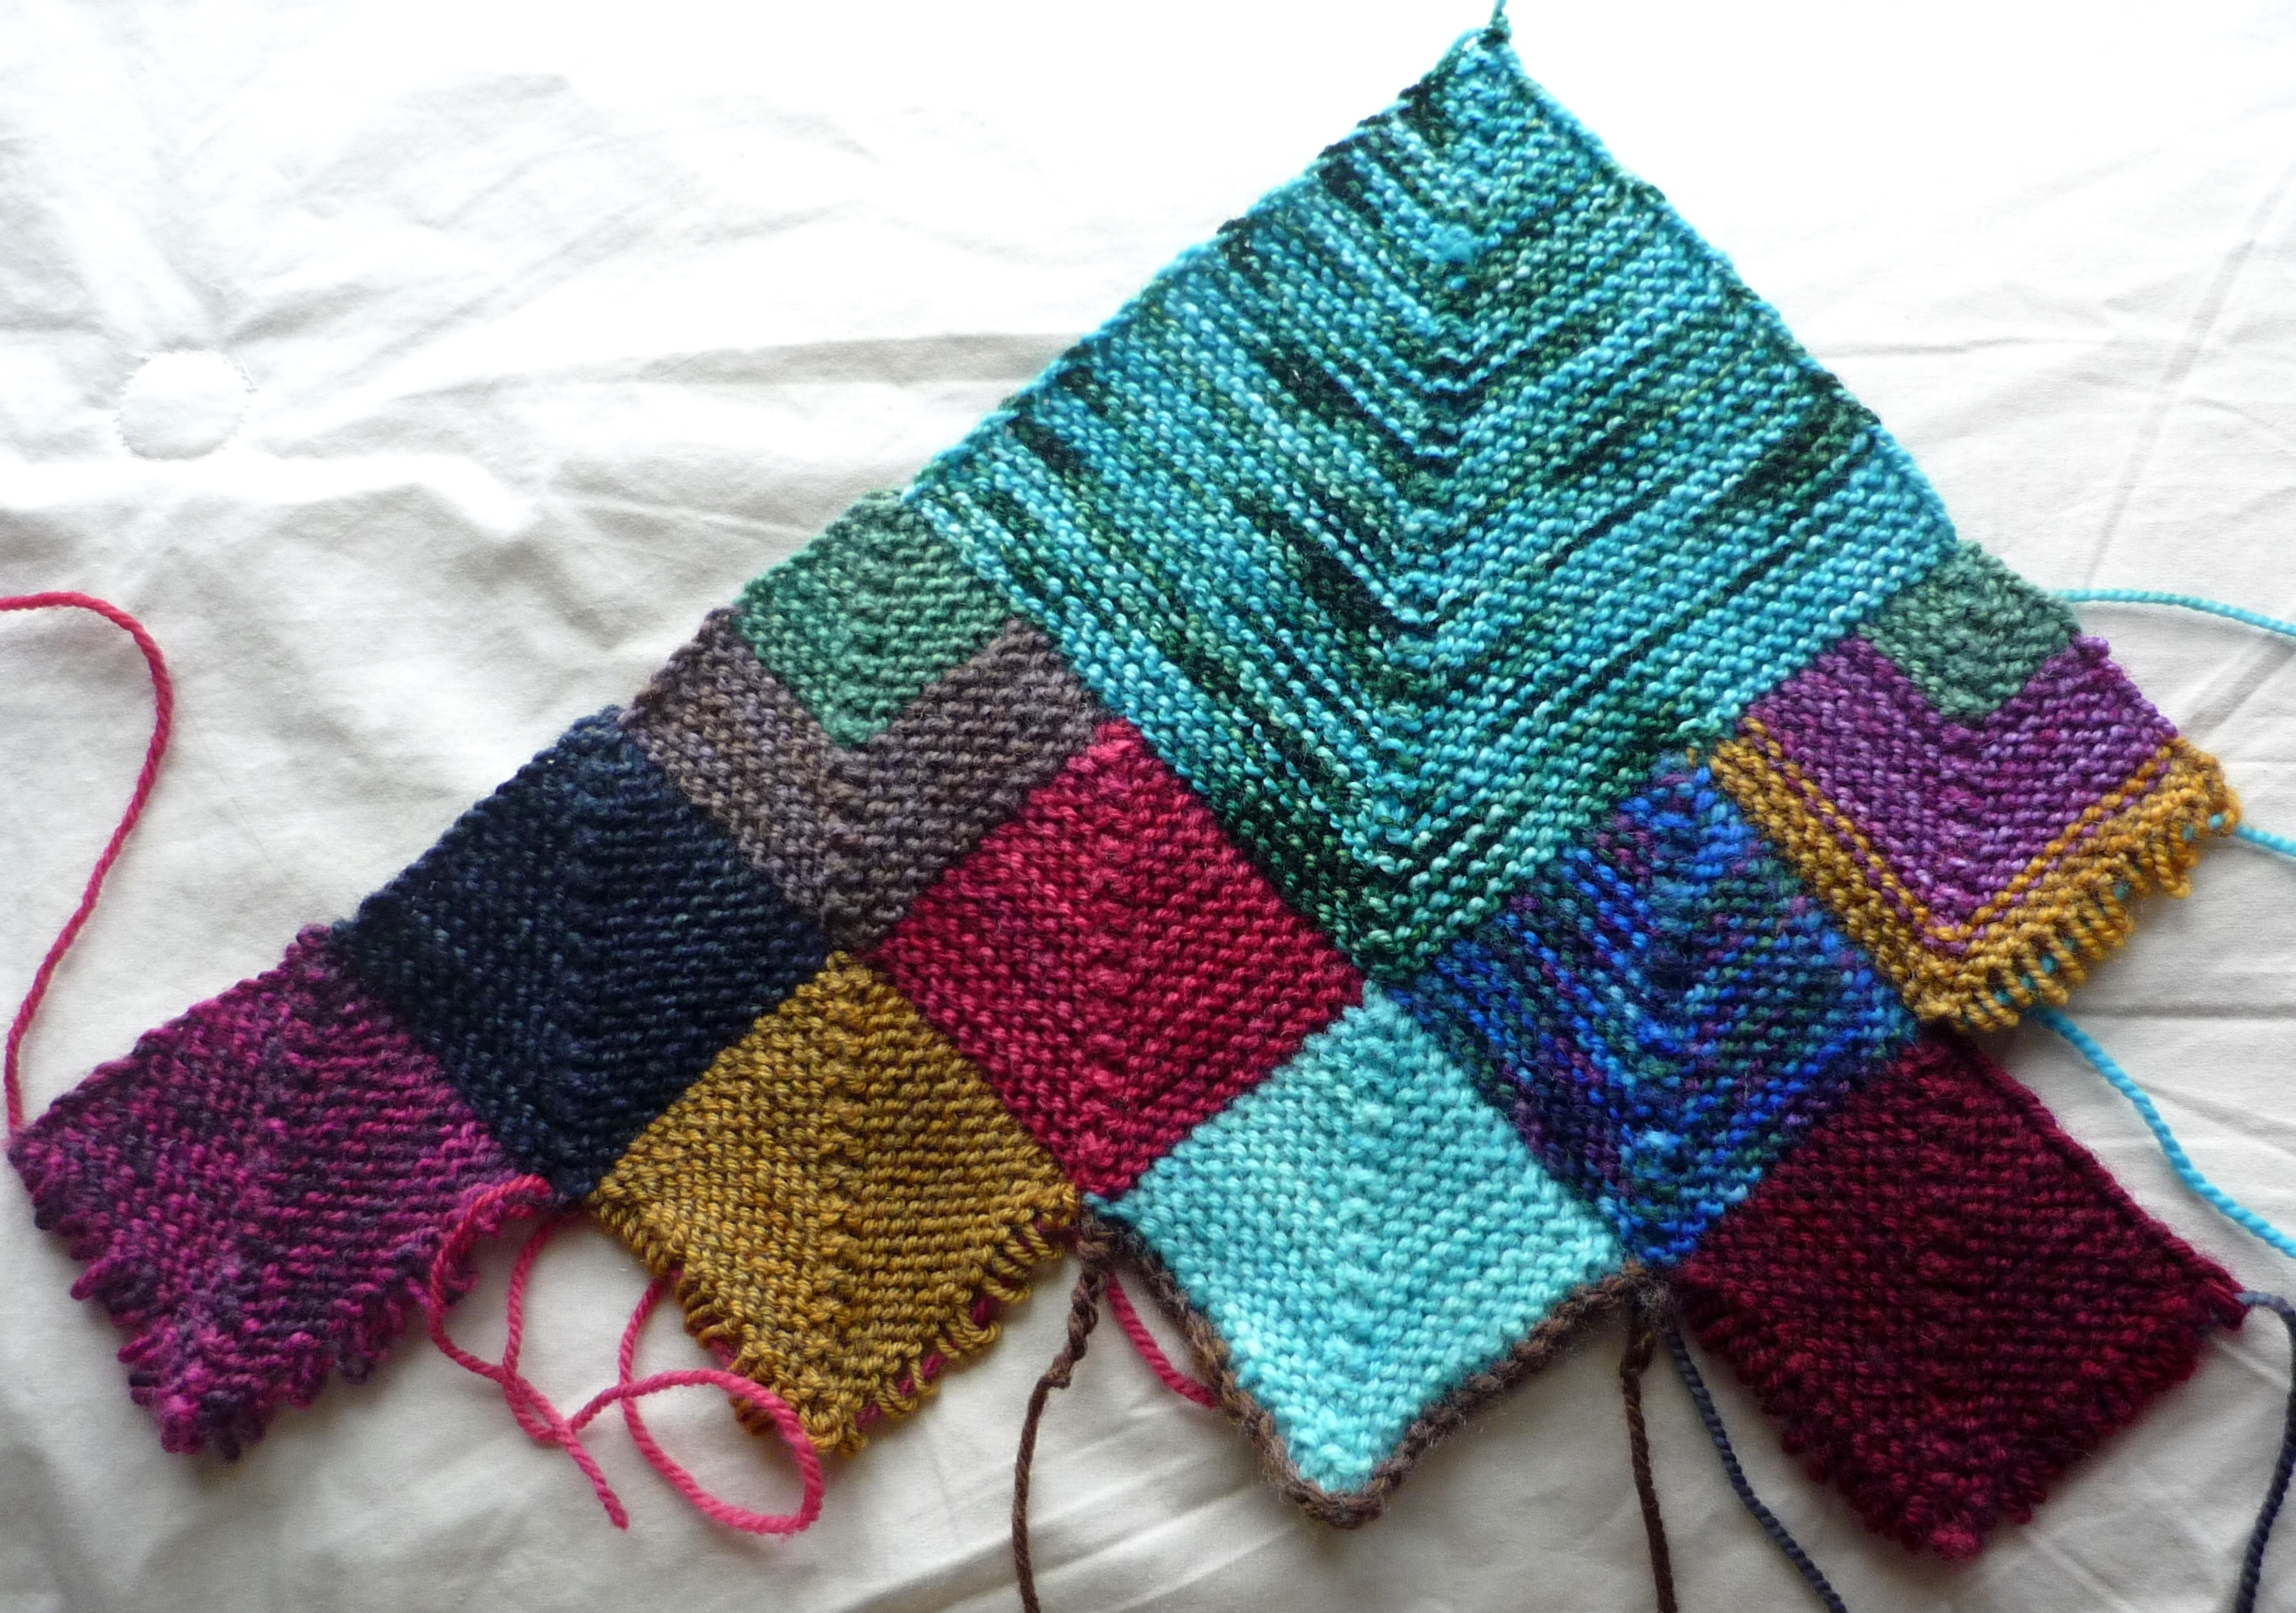 Insanity Blanket Knitting Pattern : Blanket of Insanity   Wandering Wool